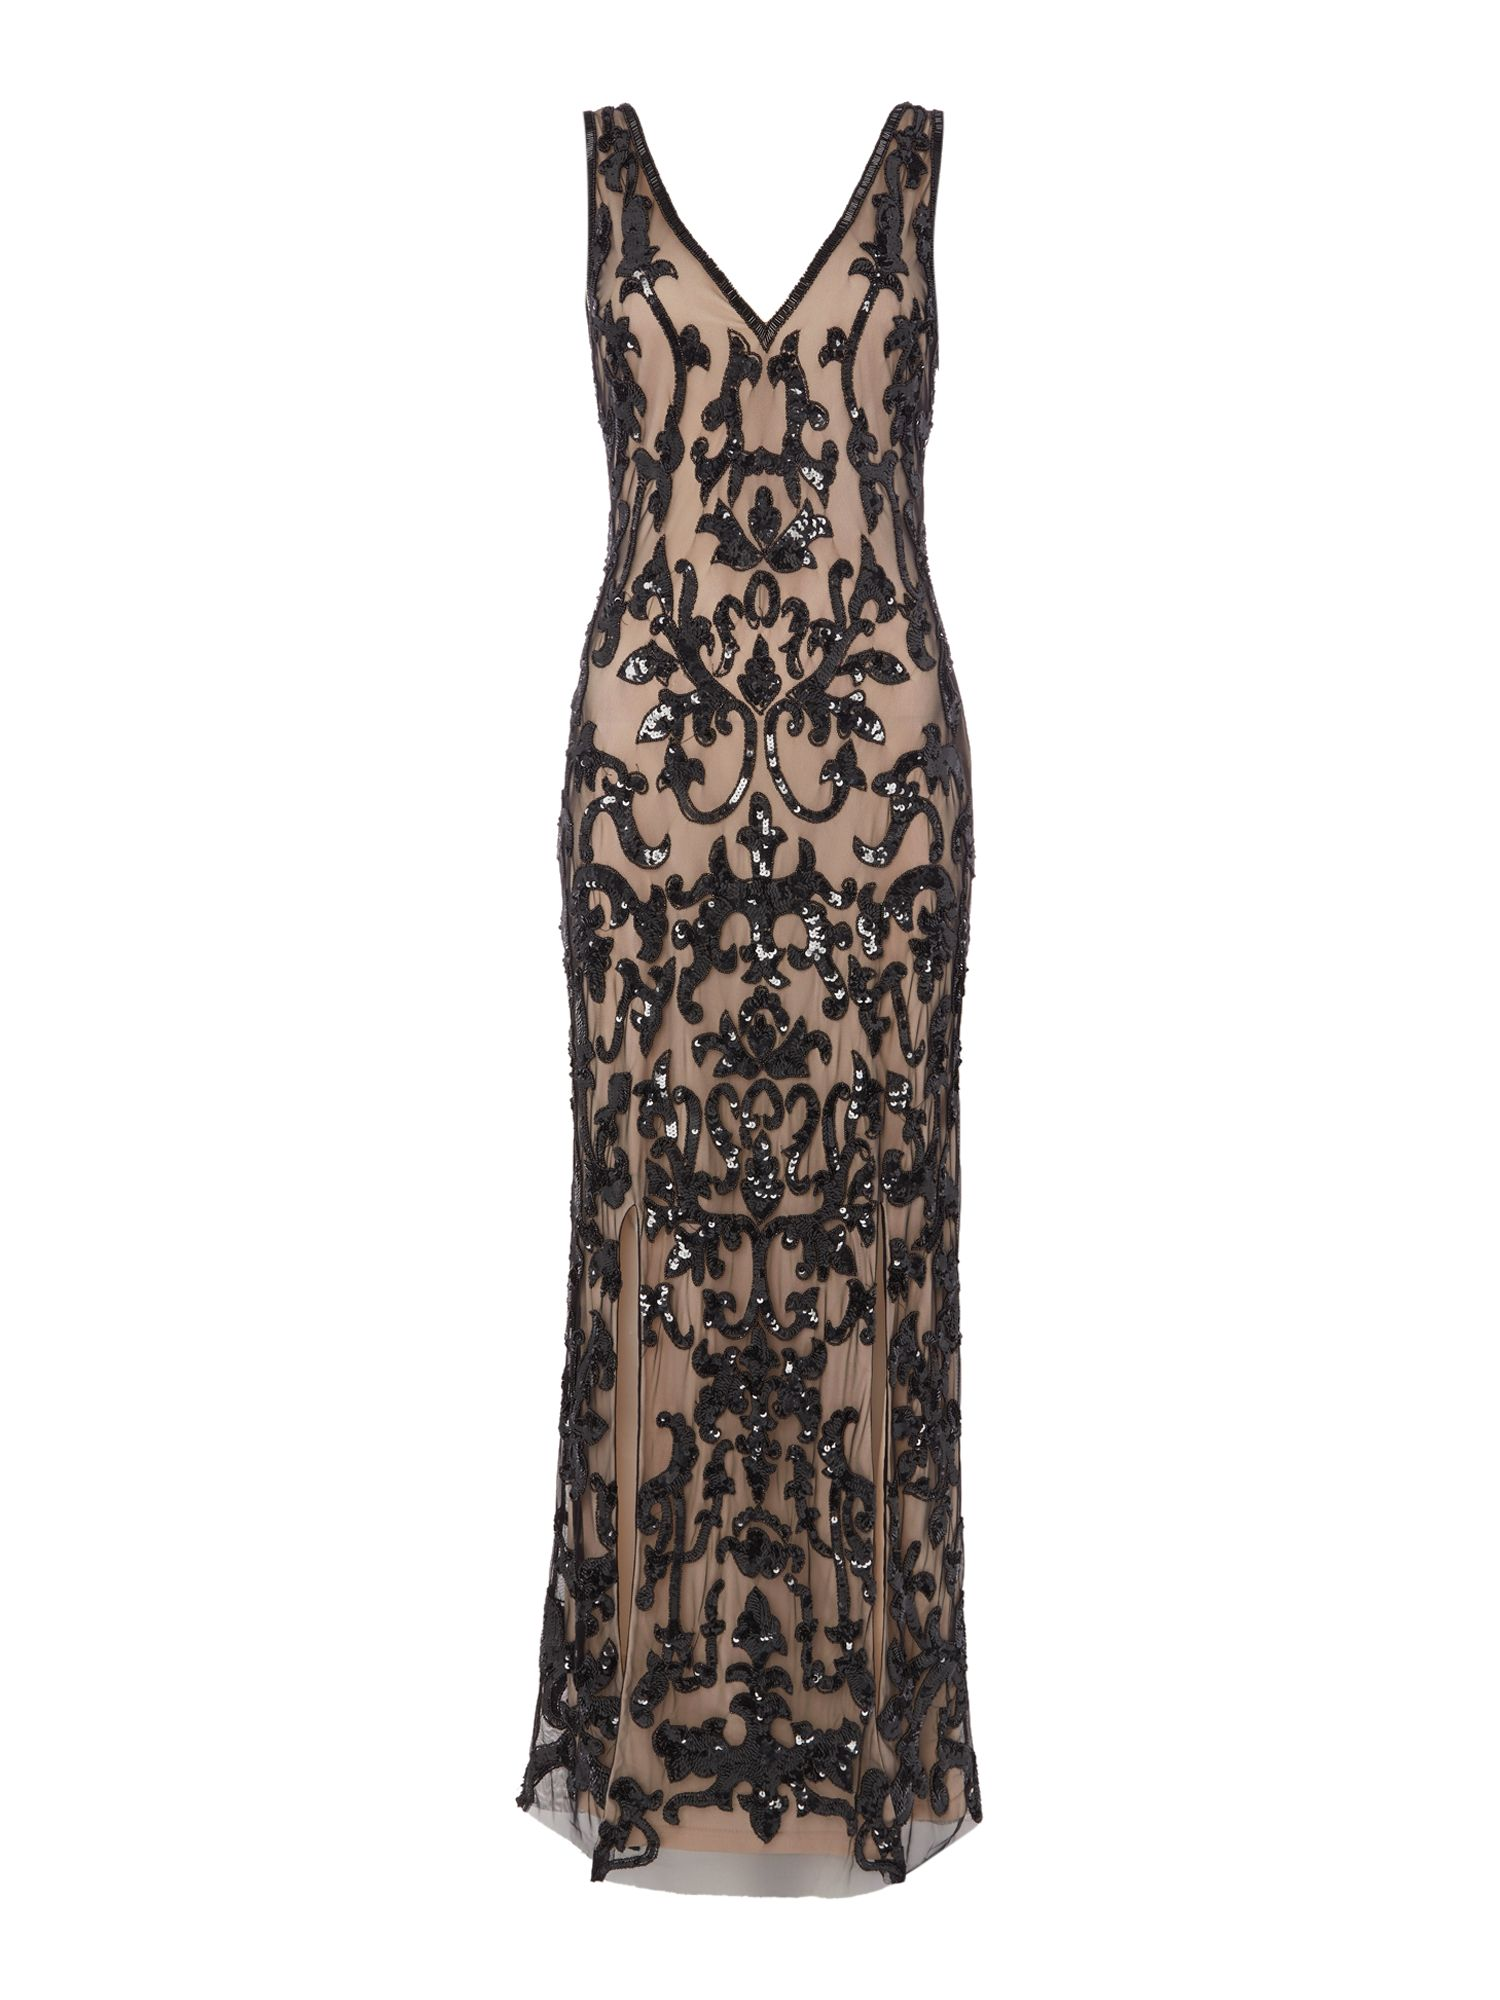 1920s Cocktail Party Dresses, Evening Gowns Frock and Frill Sleeveless gown with split Black £90.00 AT vintagedancer.com